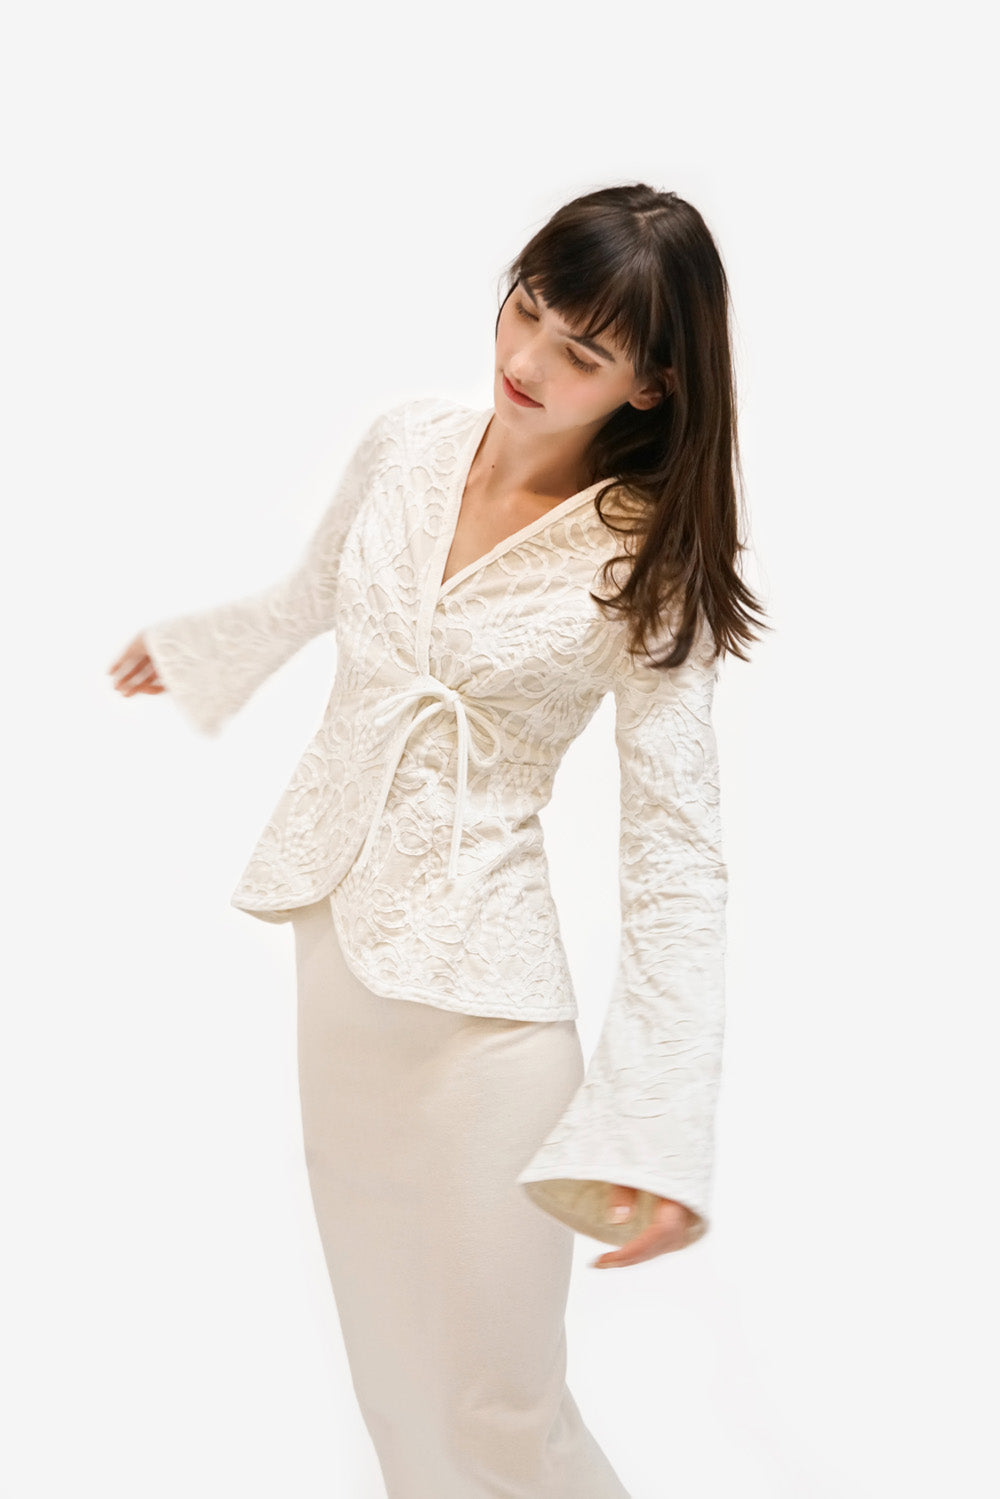 Alabama Chanin Ophelia Cardigan Handsewn Wrap Top with Long Sleeves in White